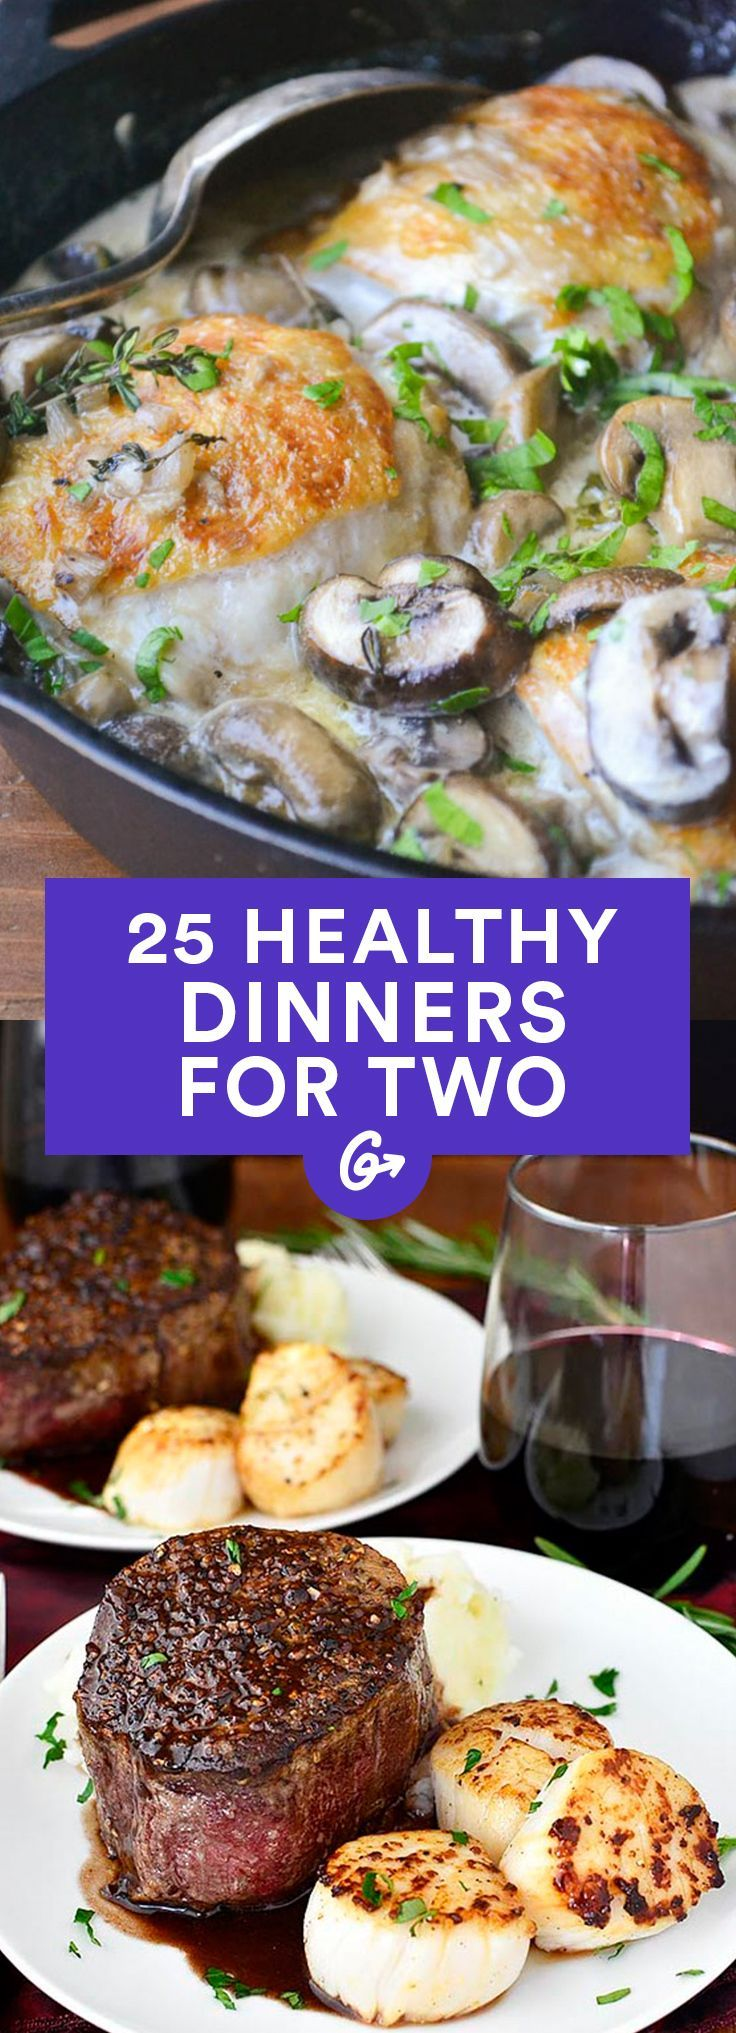 25 Healthy Dinner Recipes For Two